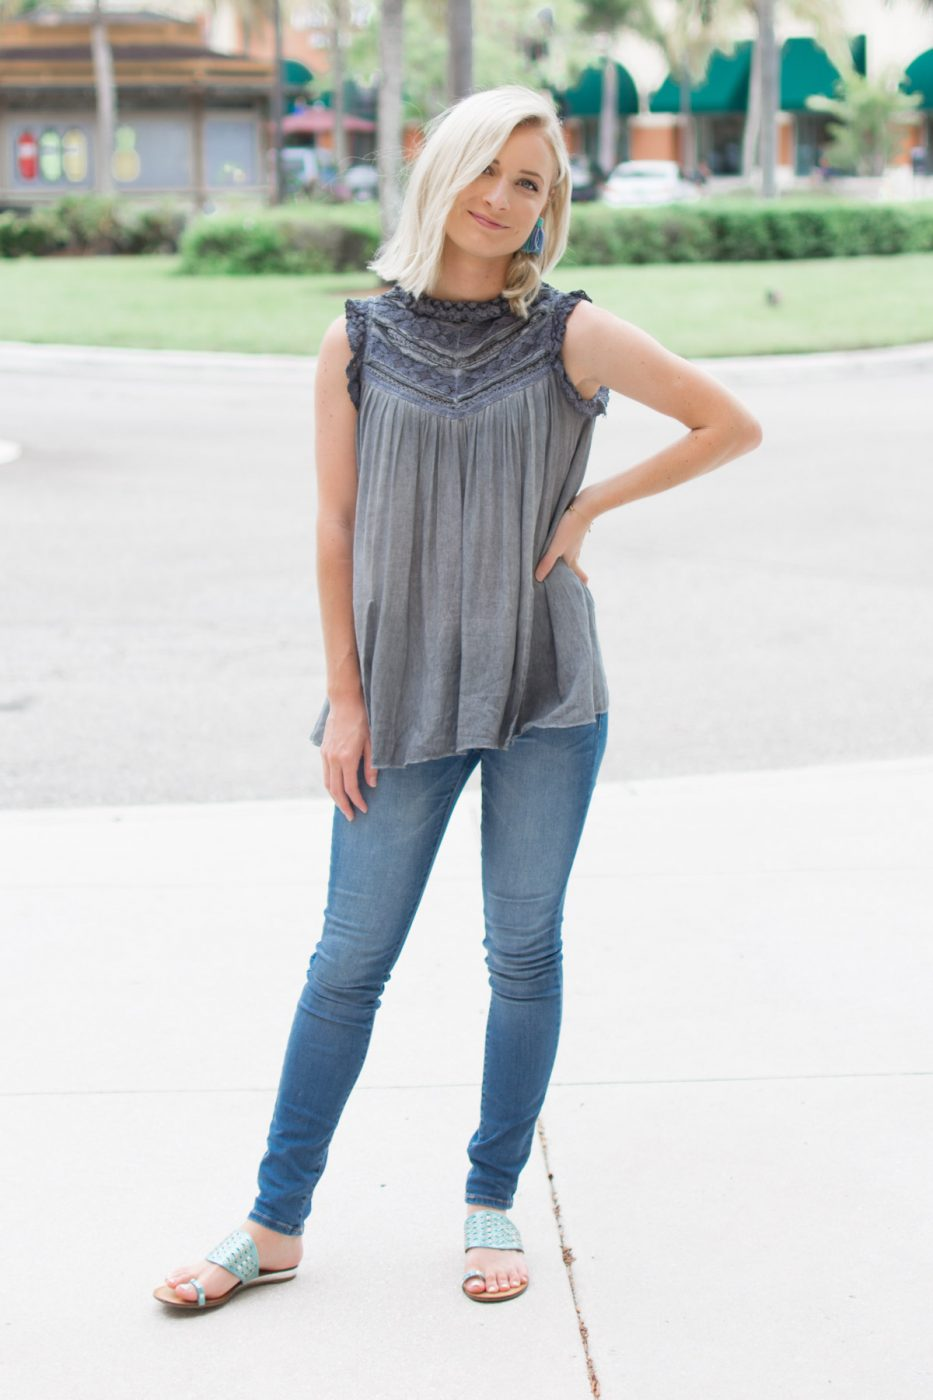 Dinner Date Outfit With Southern Roots - Jenny Bess